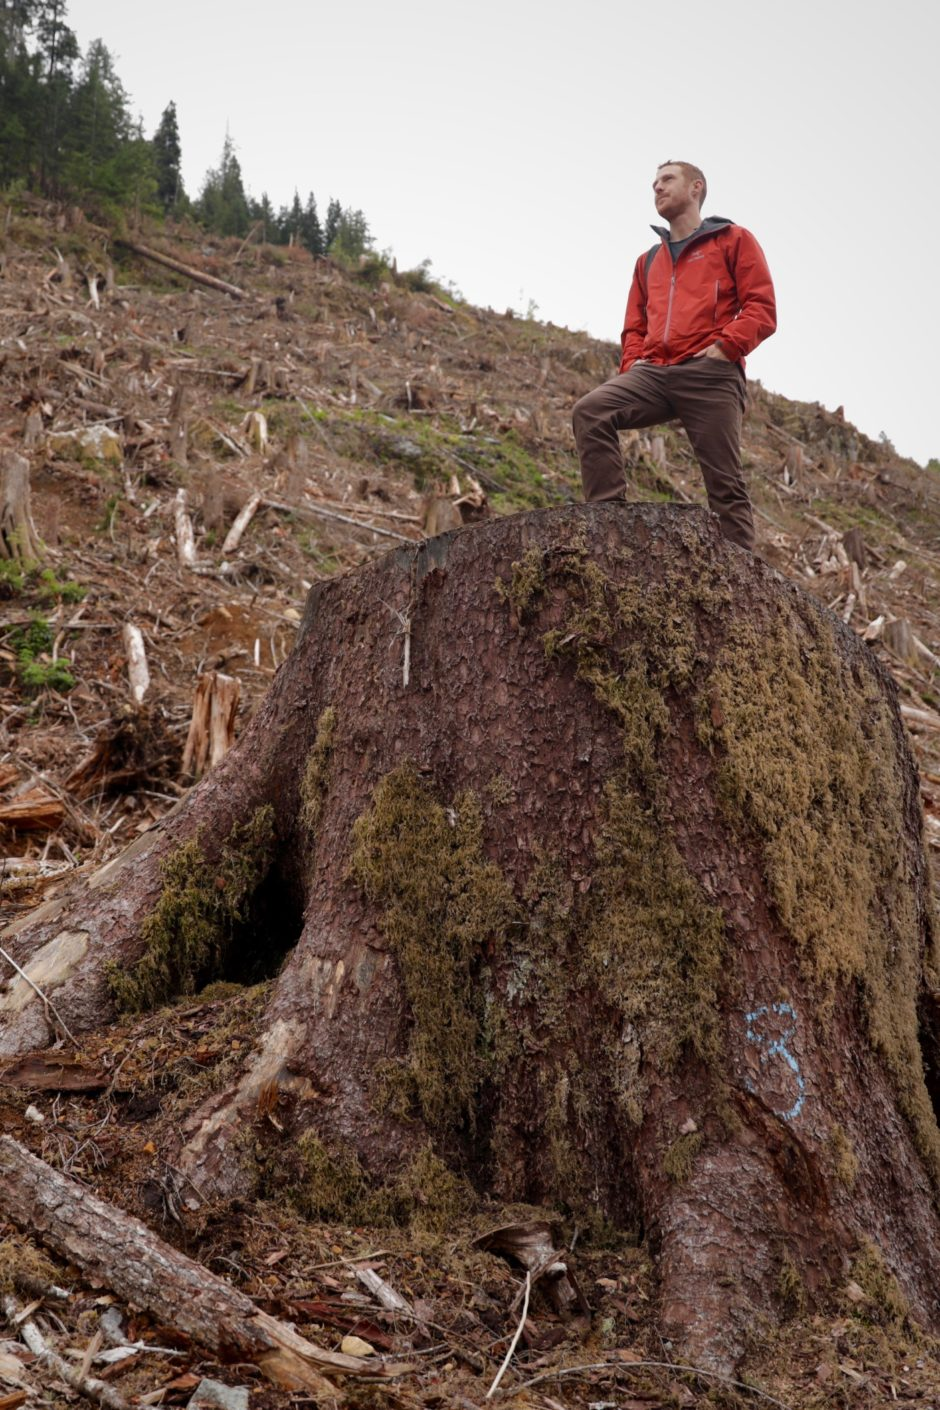 Ancient Forest Alliance campaigner TJ Watt stands on the stump of a spruce tree in a logged area near Hadikin Lake, outside Lake Cowhican on Vancouver Island. (Chris Corday/CBC)